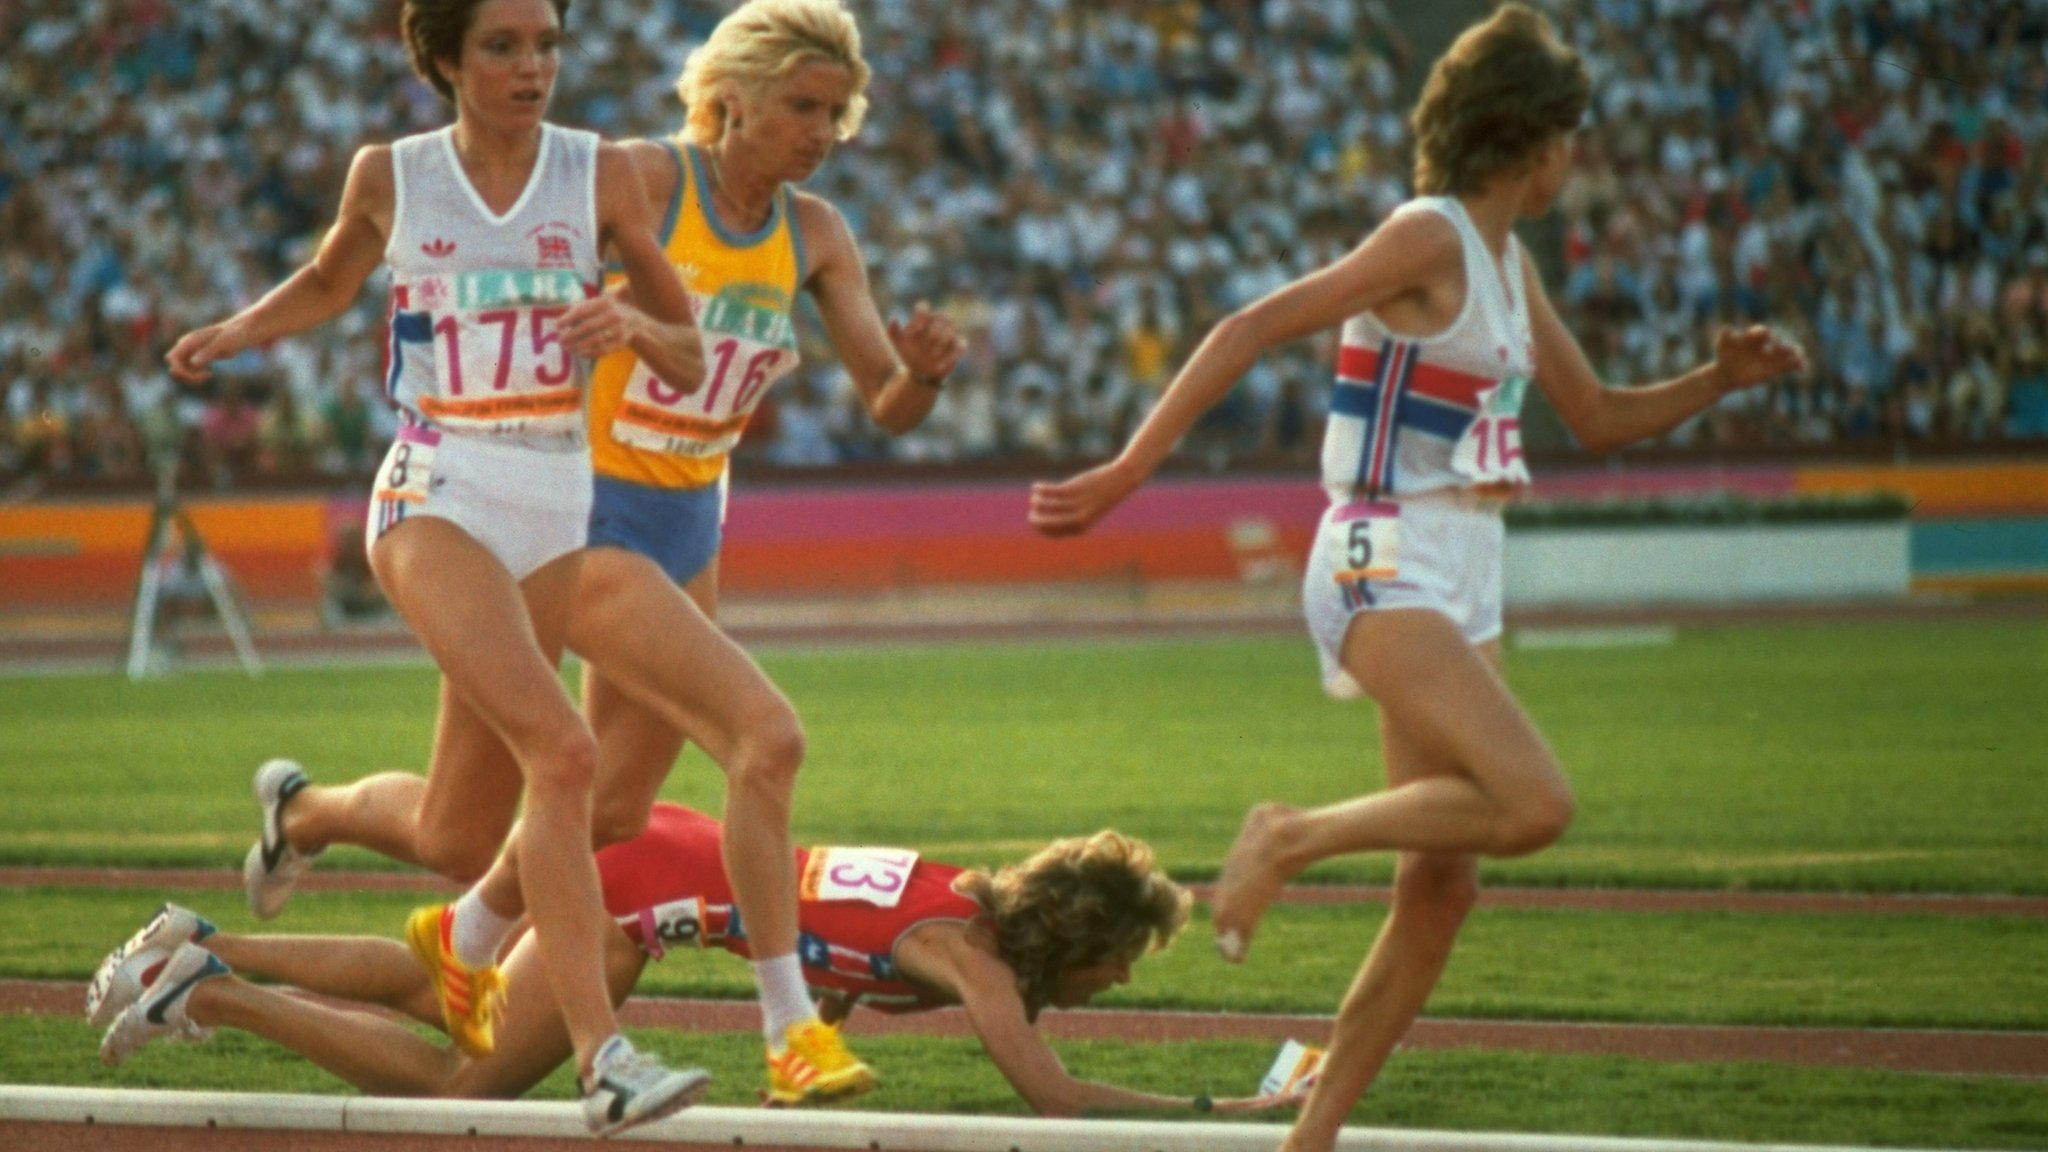 Zola Budd and Mary Decker to reunite in documentary film